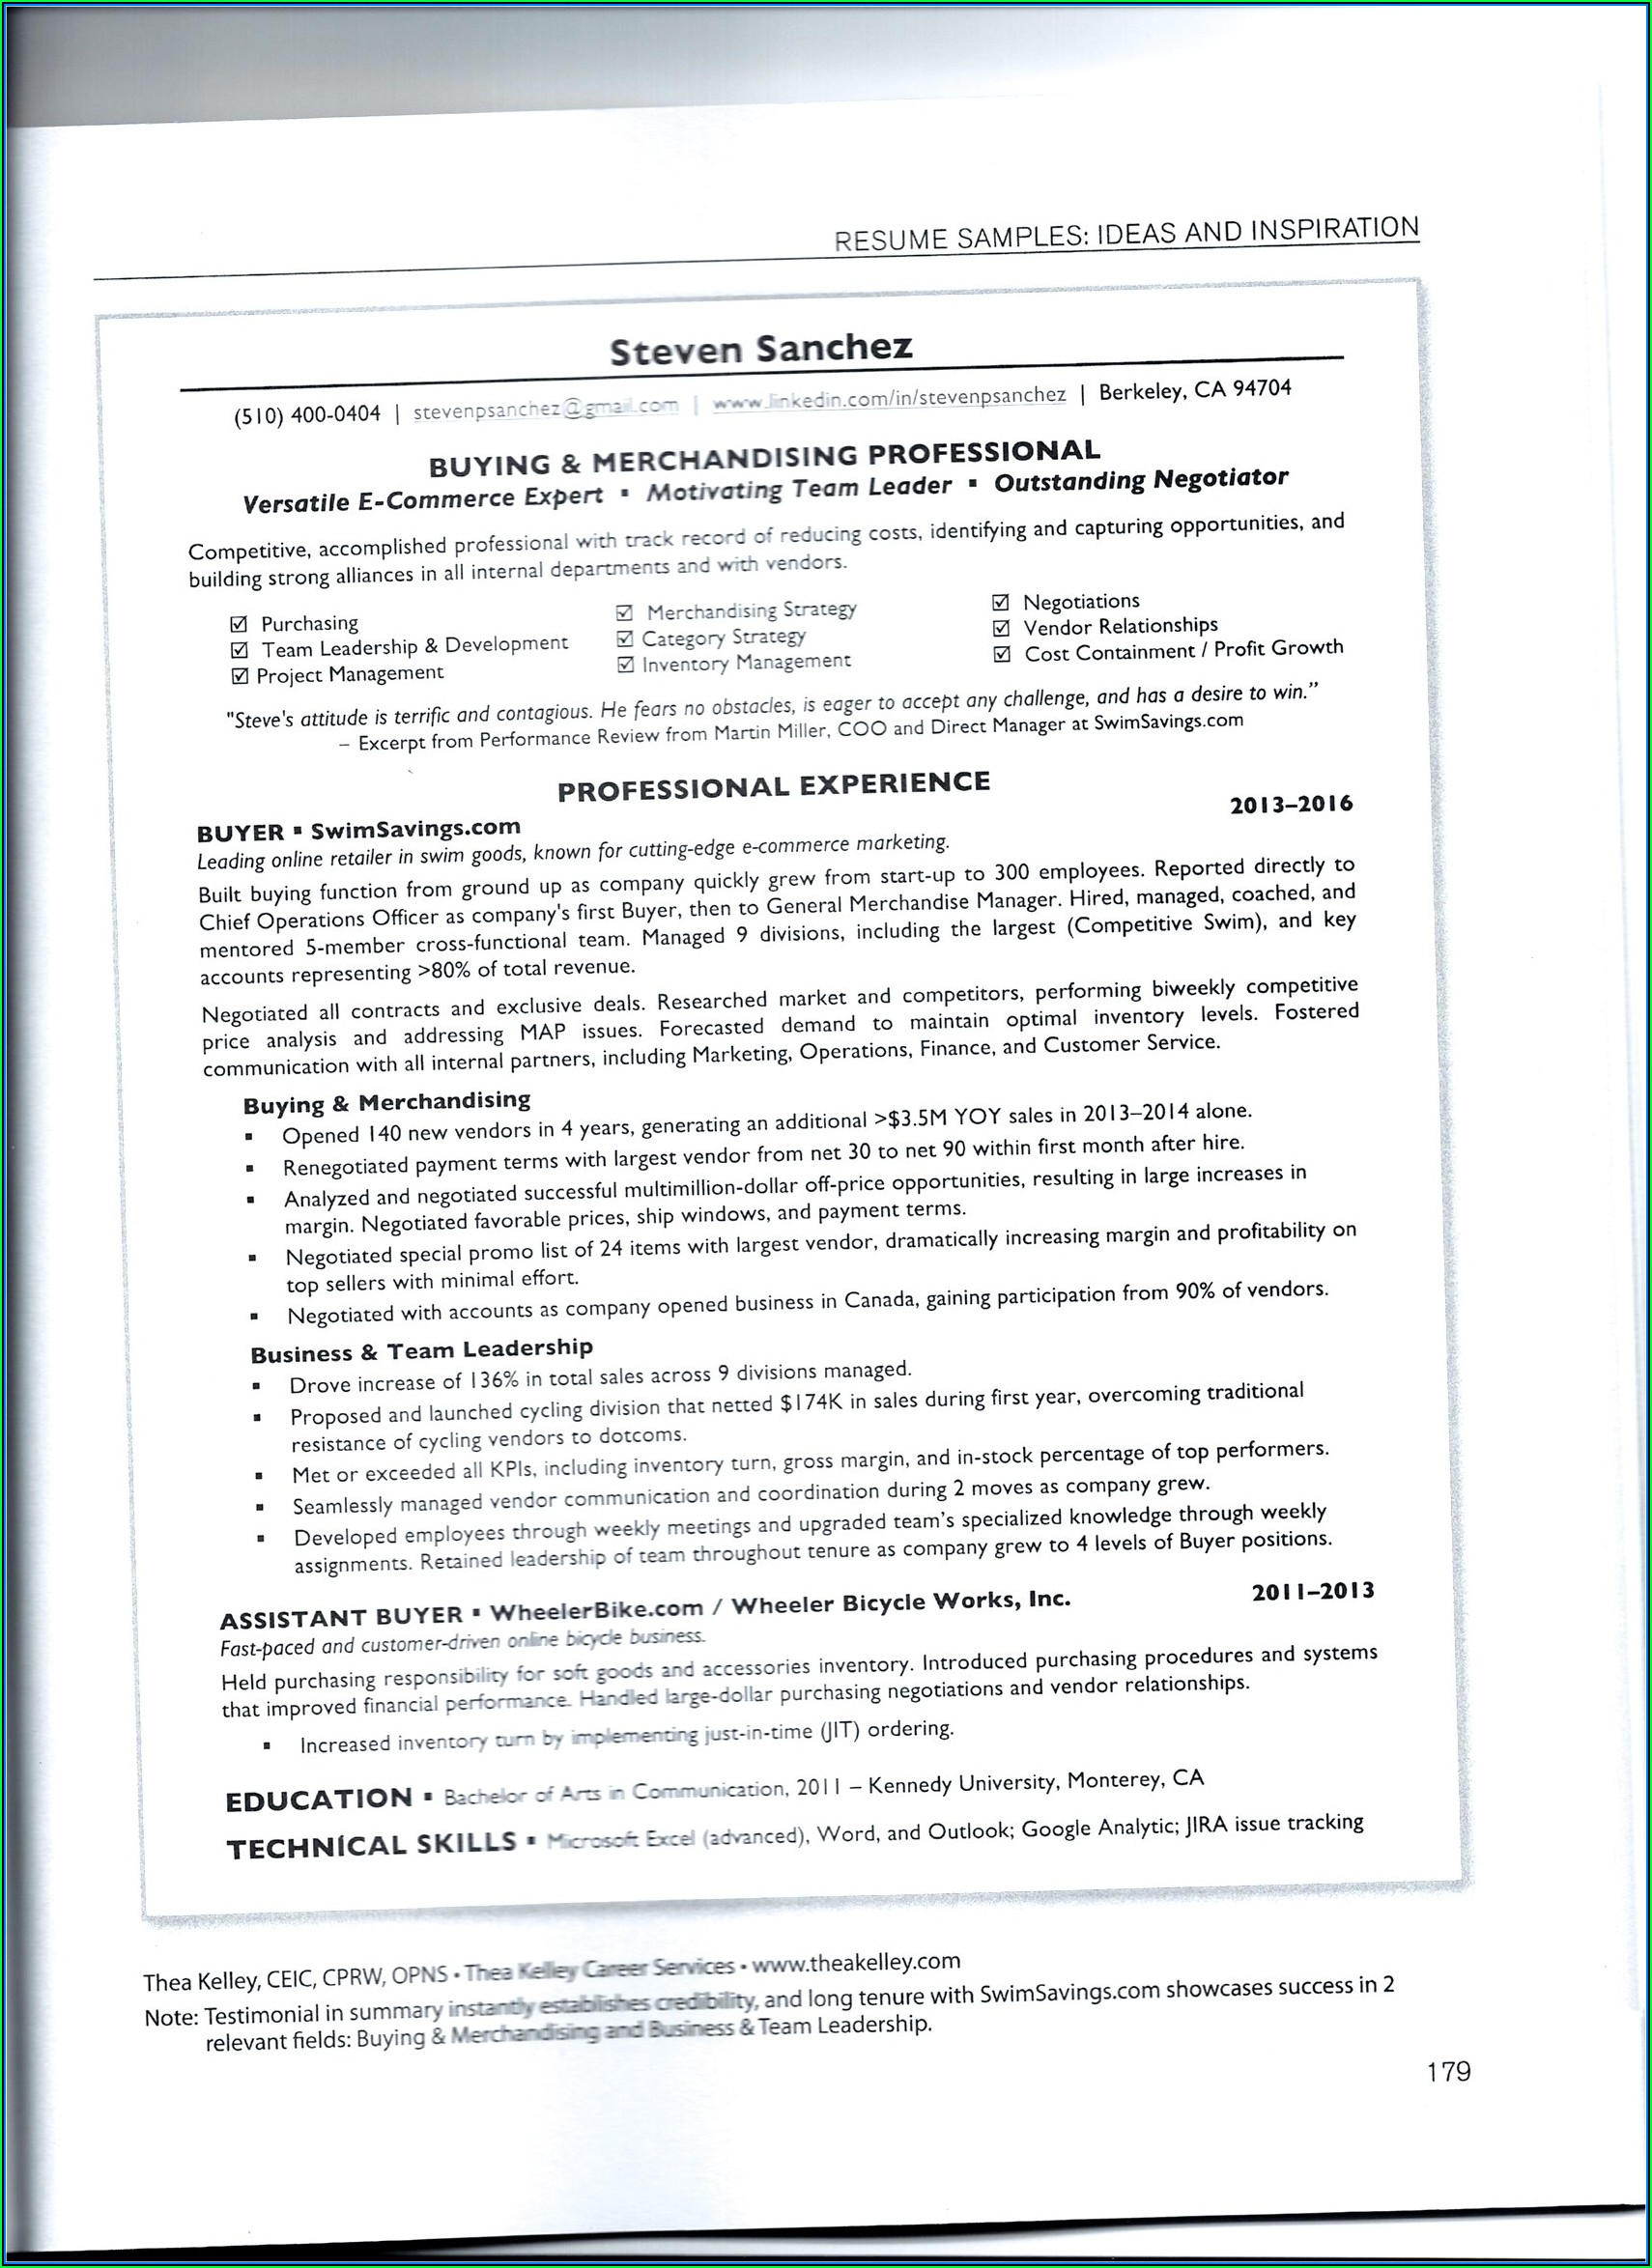 Careerbuilder Resume Template